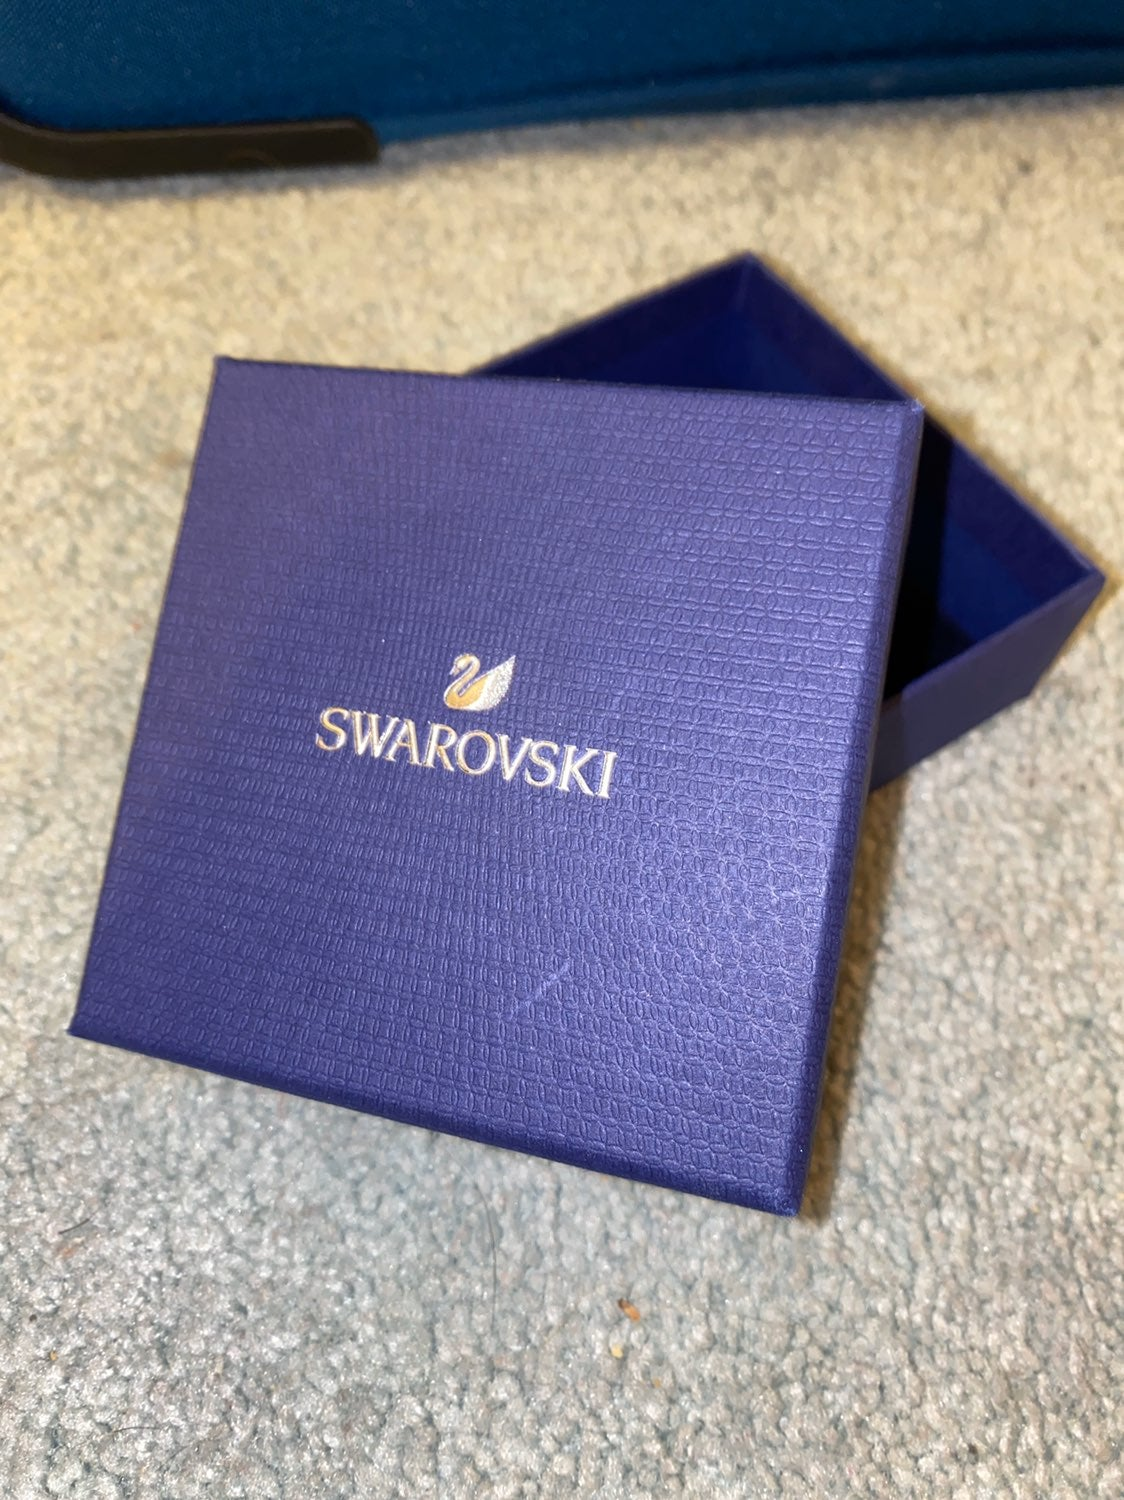 Large AND small swarovski boxes